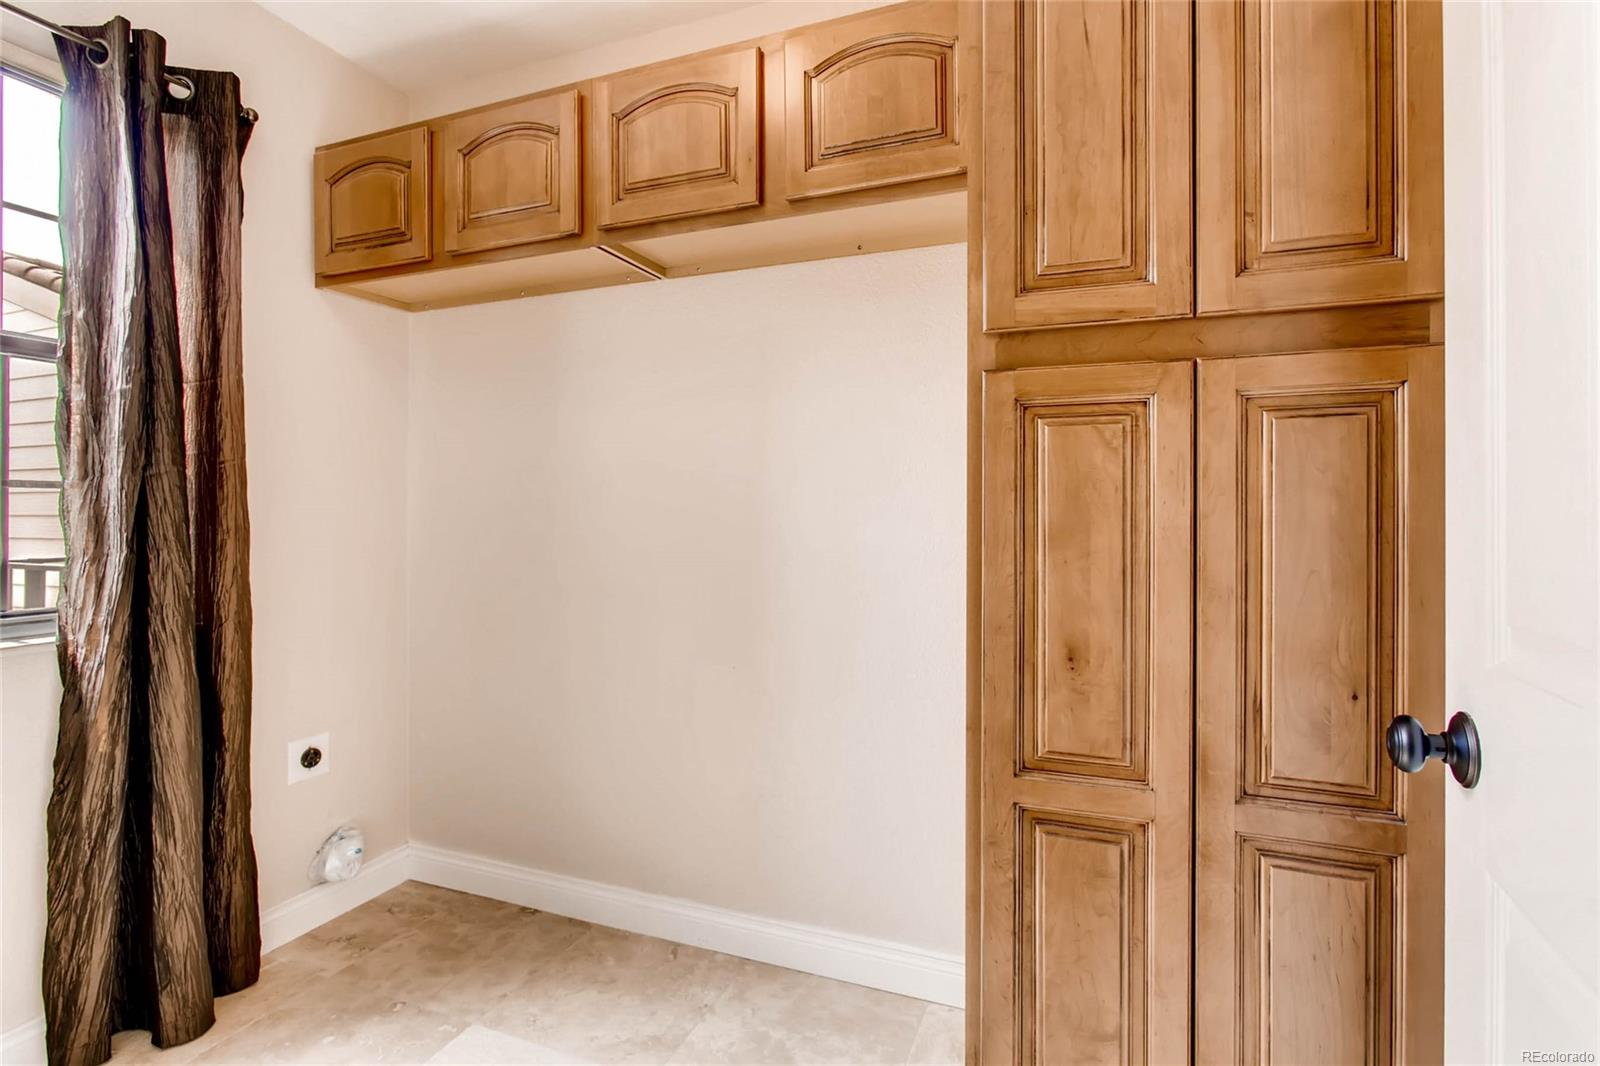 LARGE LAUNDRY ROOM COMPLETE WITH STORAGE CABINETS